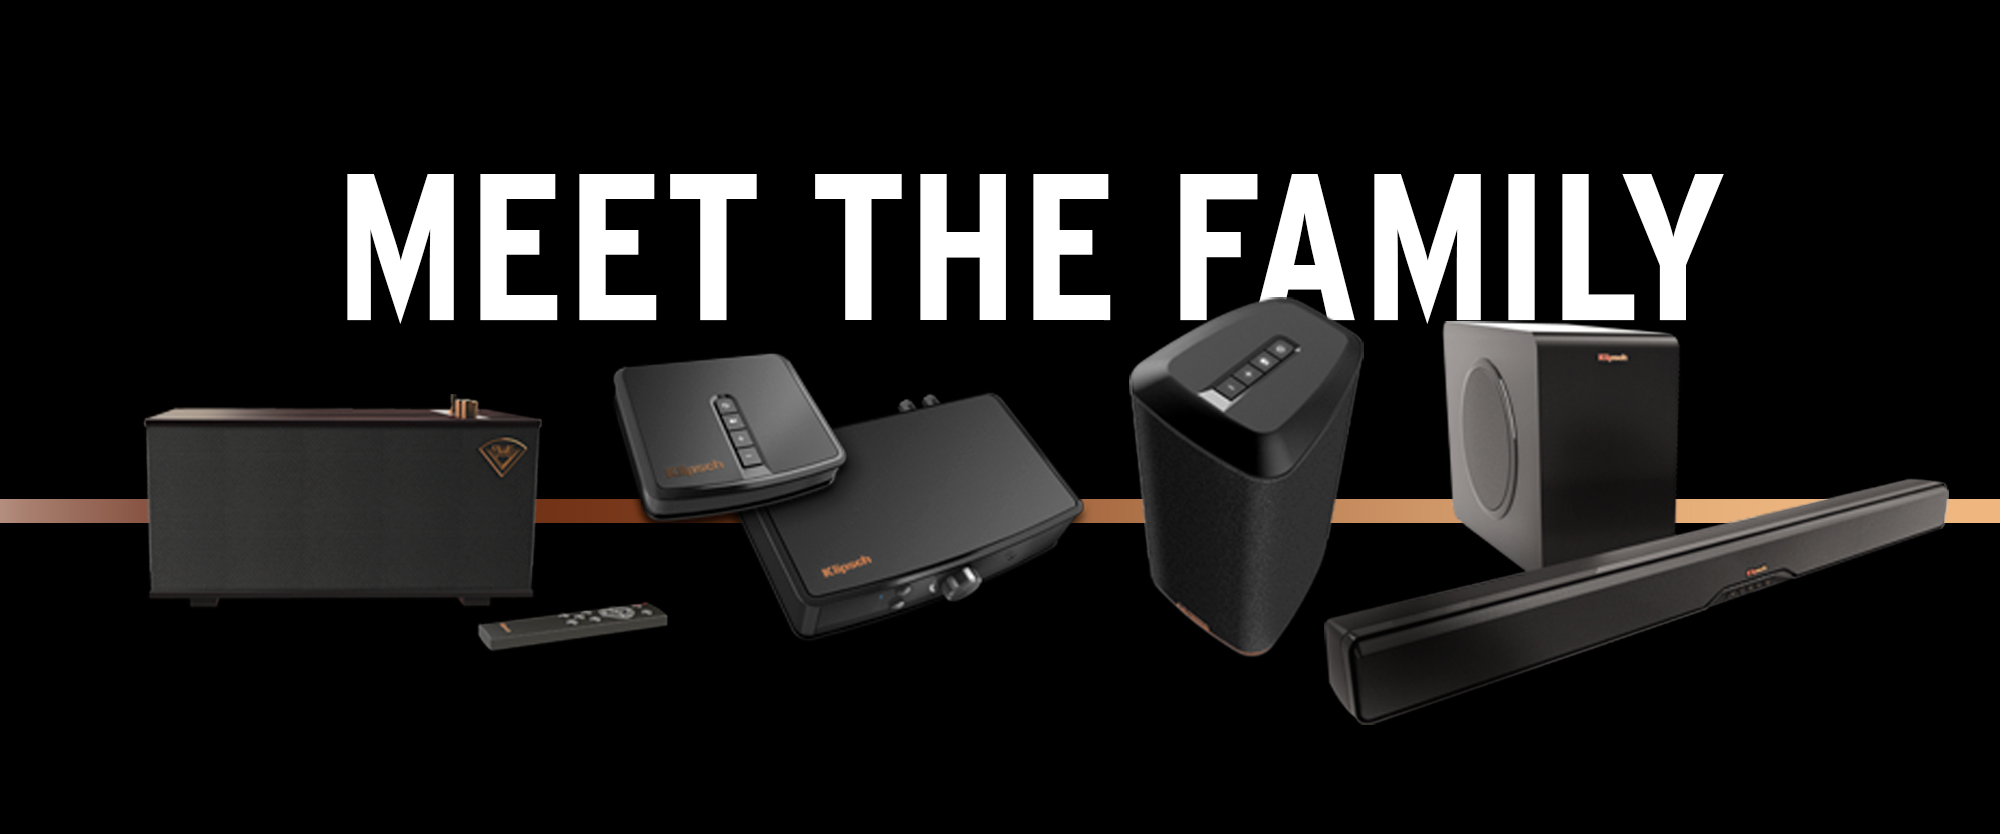 Klipsch Stream Family 2